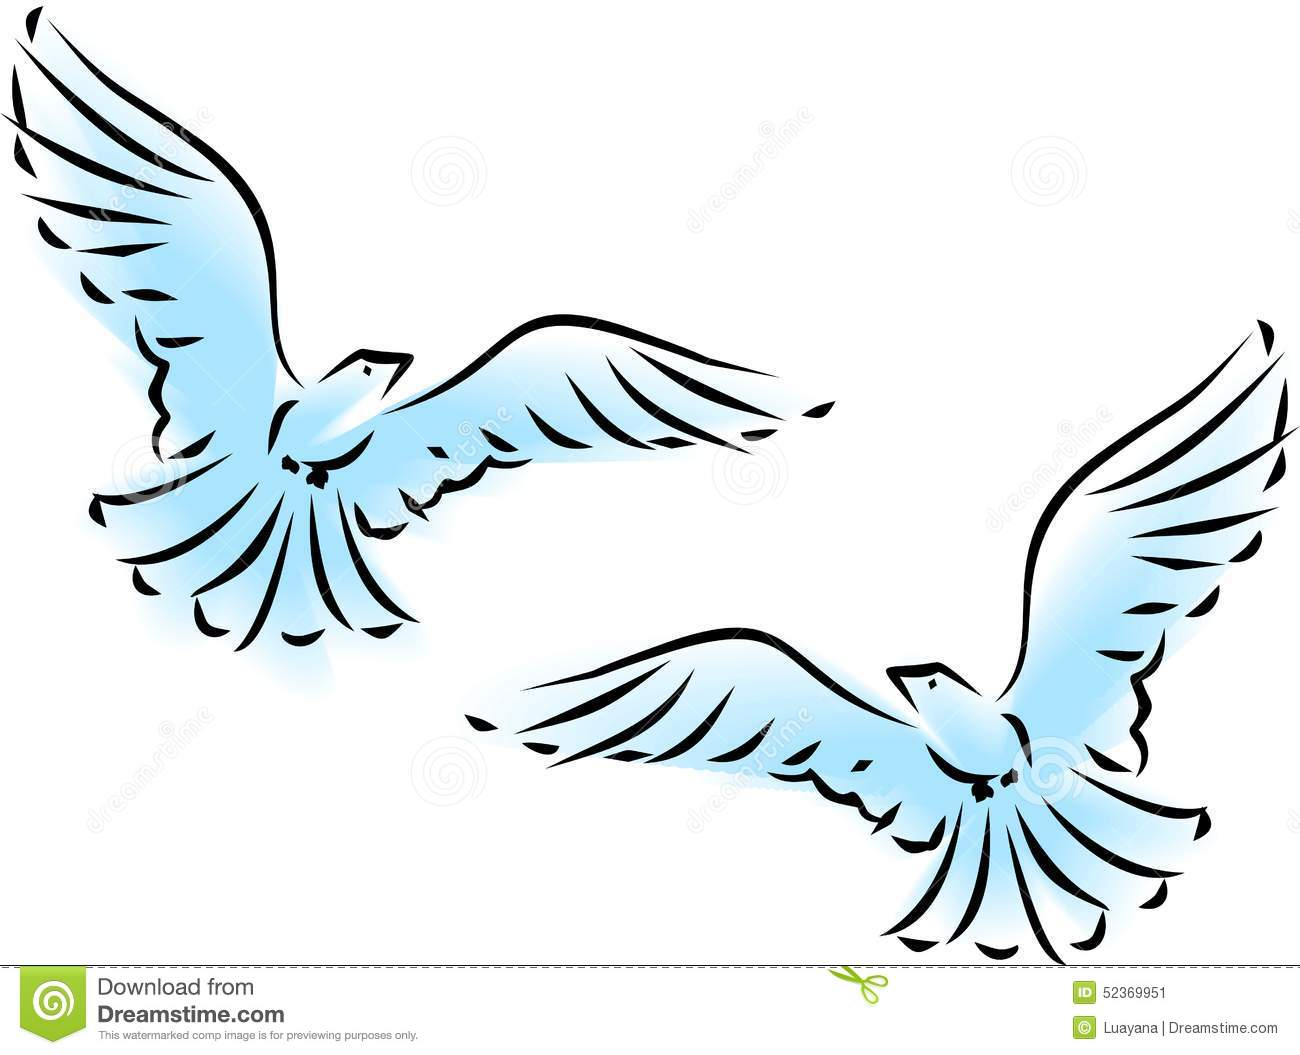 Flying Dove Stock Vector - Image: 52369951